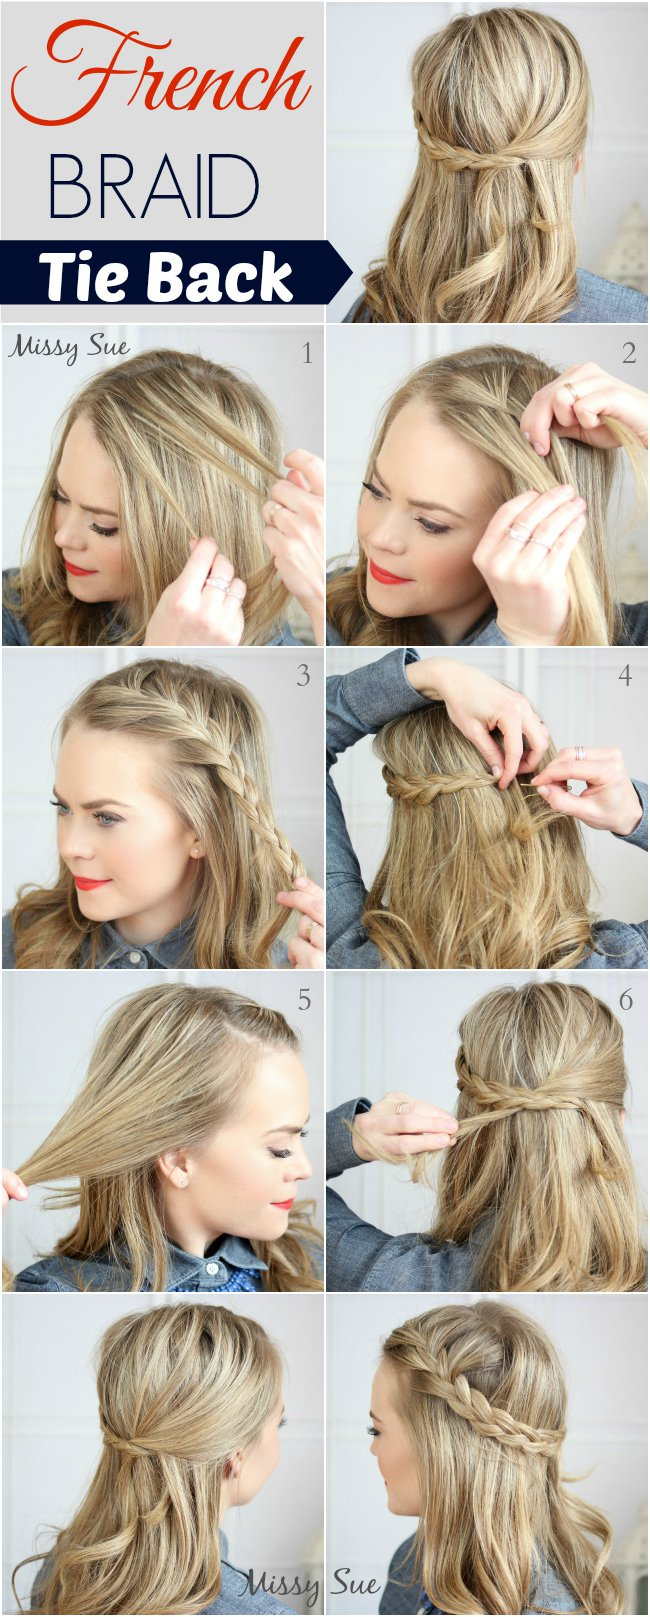 Braided Hairstyle Tutorials For Autumn Season 2016-17 4